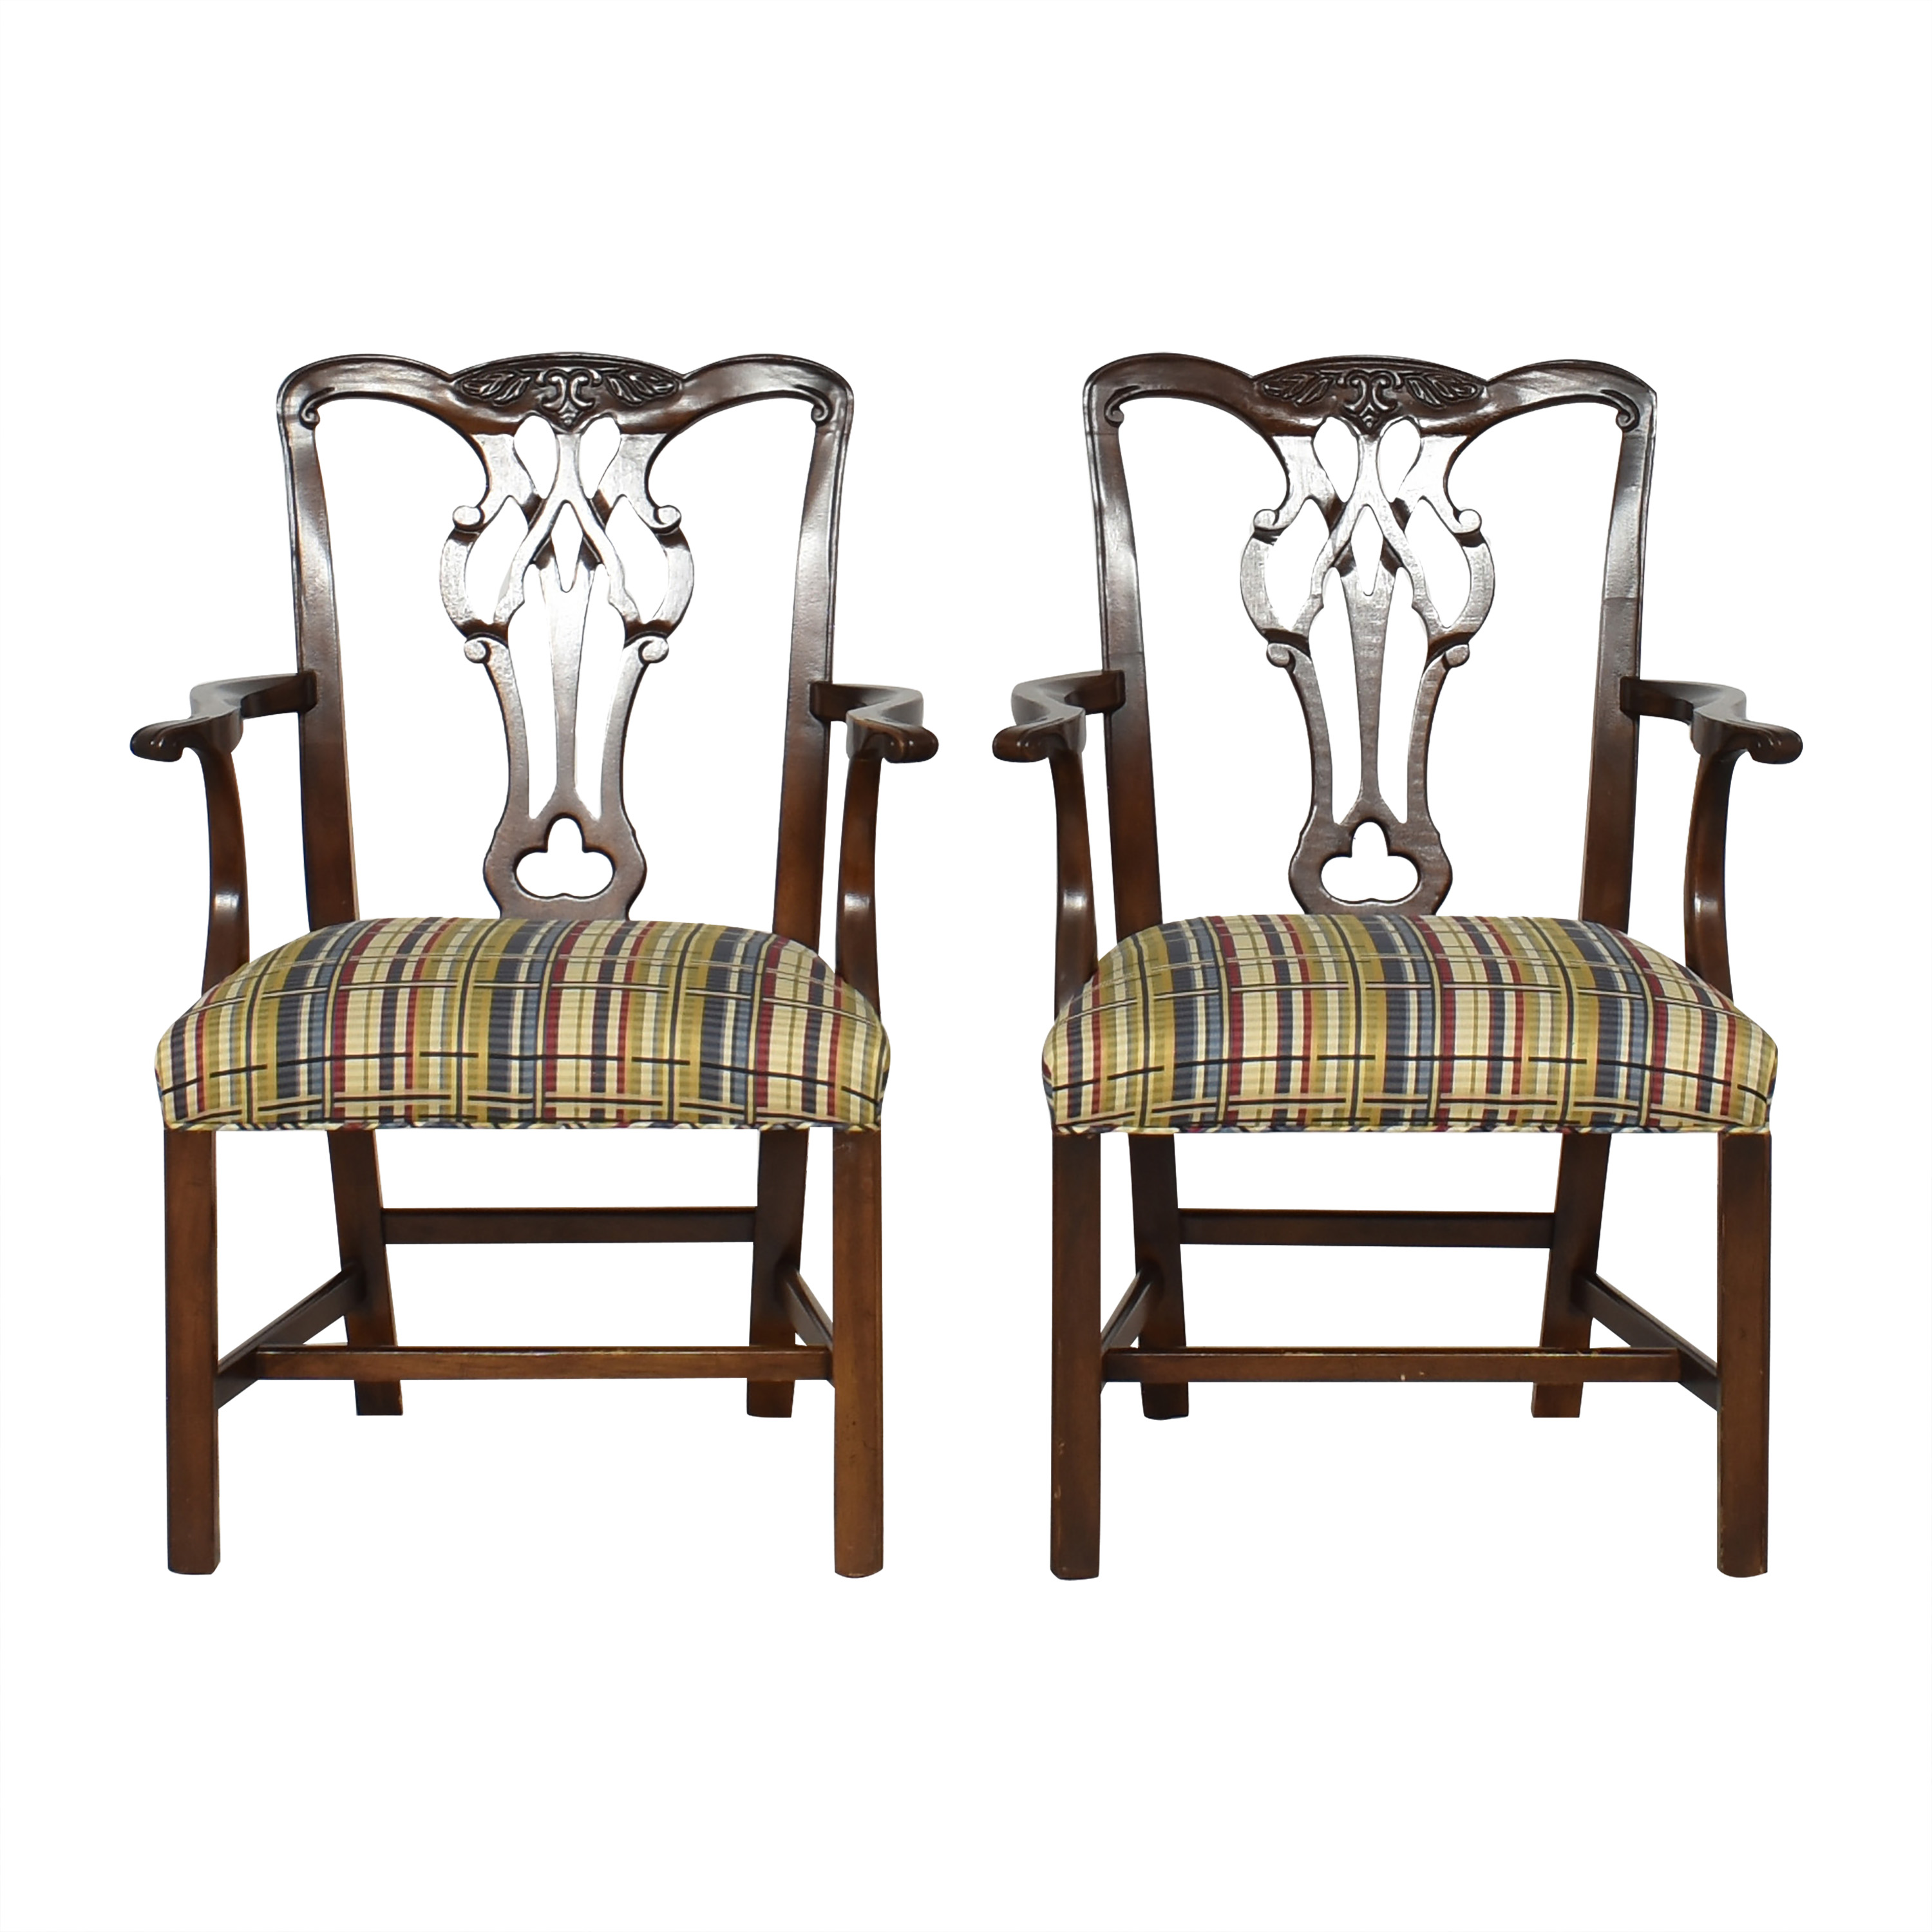 Chippendale-Style Dining Arm Chairs / Dining Chairs